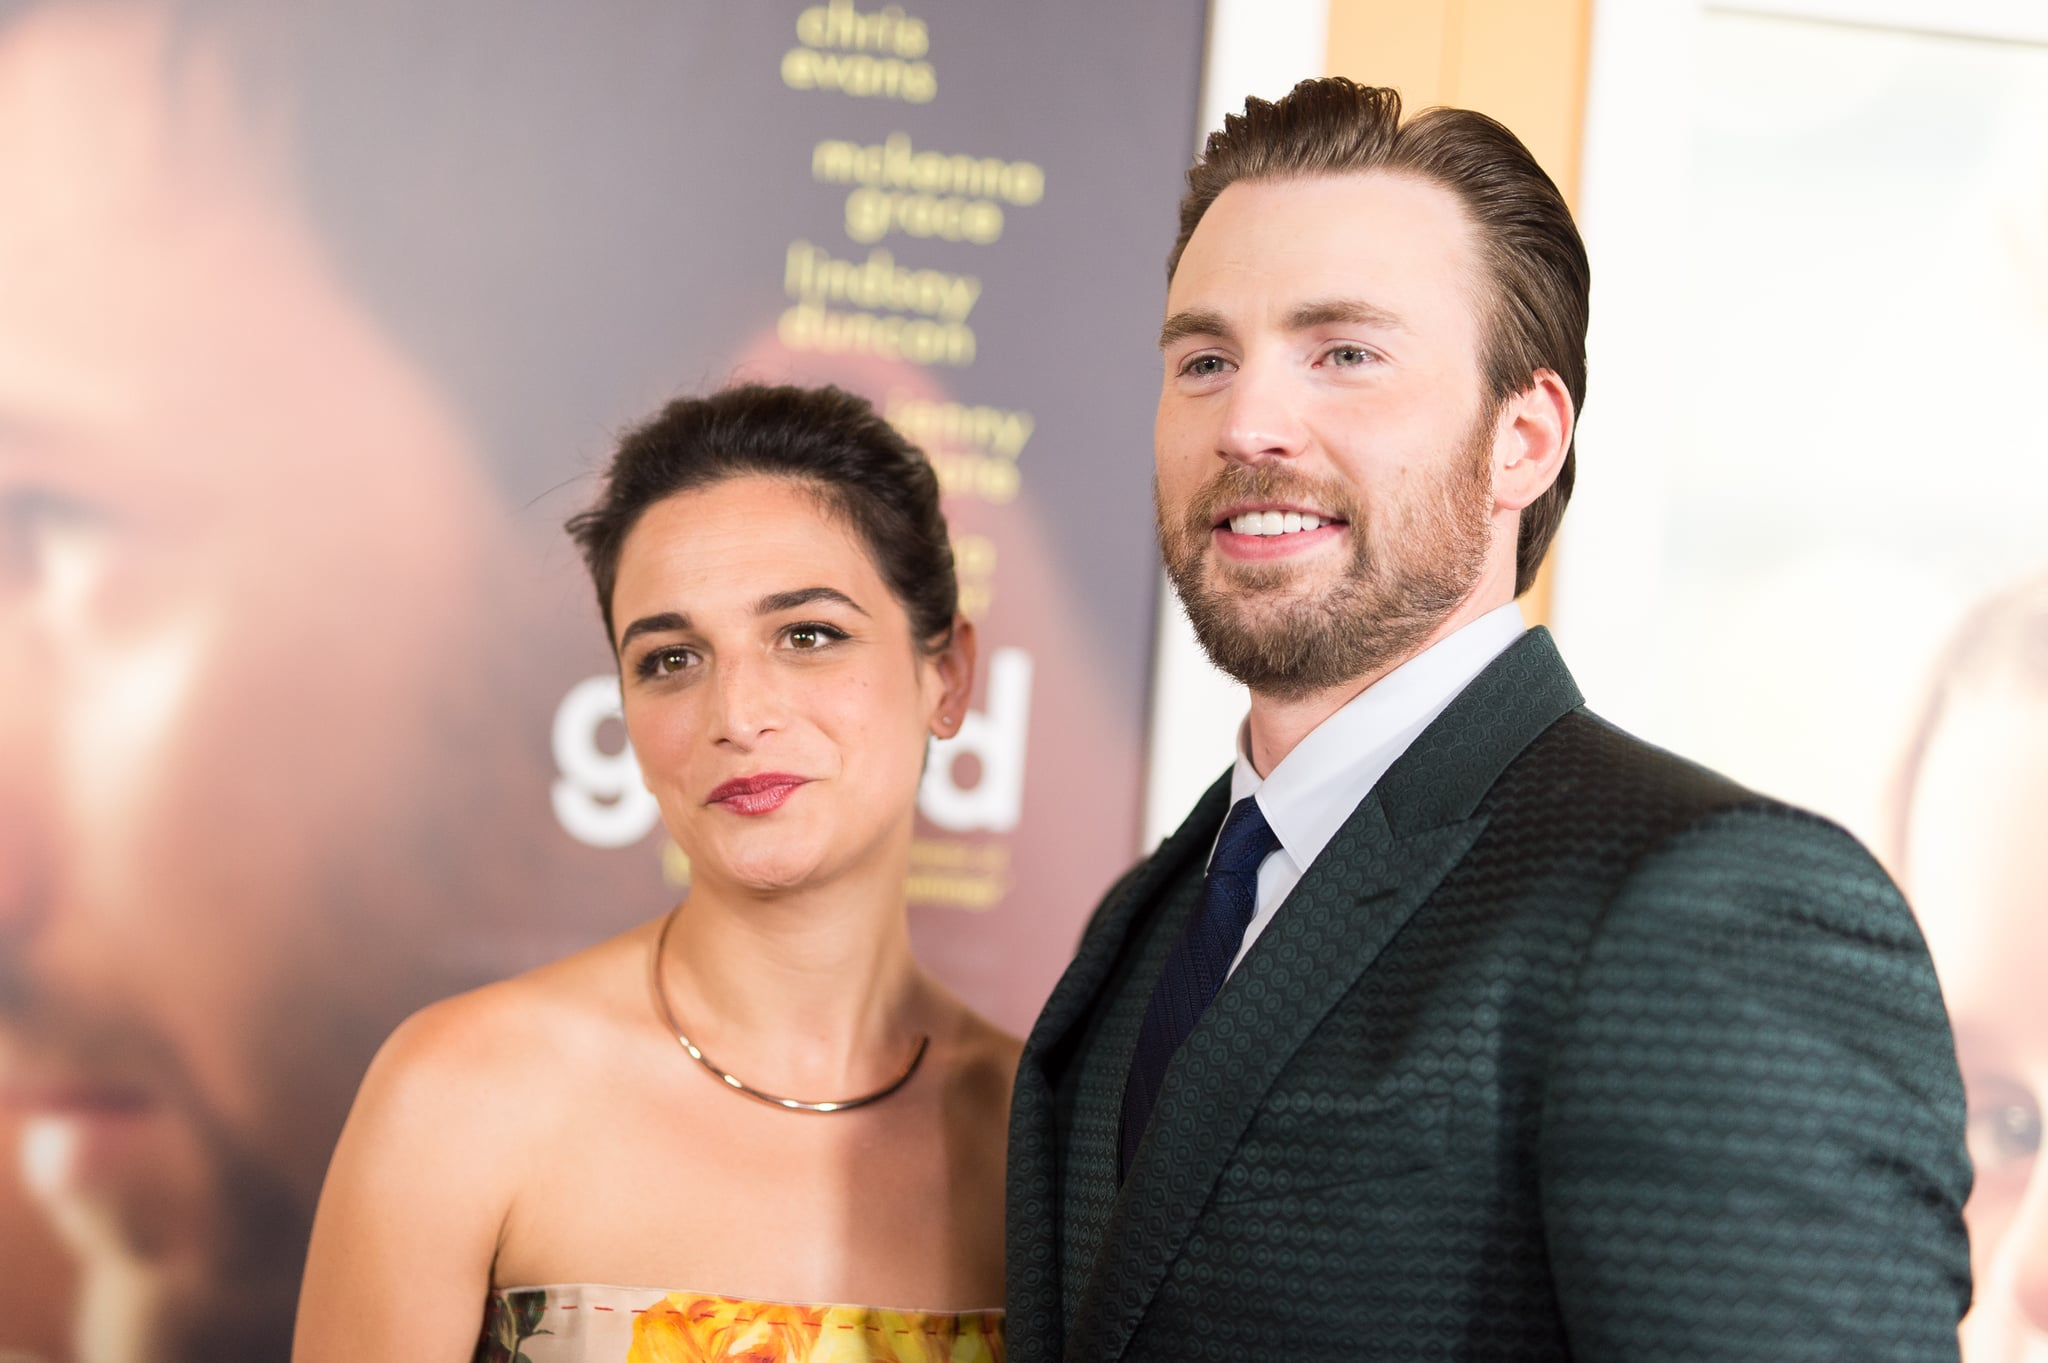 LOS ANGELES, CA - APRIL 04:  Actors Jenny Slate (L) and Chris Evans arrive at the premiere of Fox Searchlight Pictures' 'Gifted' at Pacific theatres at the Grove on April 4, 2017 in Los Angeles, California.  (Photo by Emma McIntyre/Getty Images)